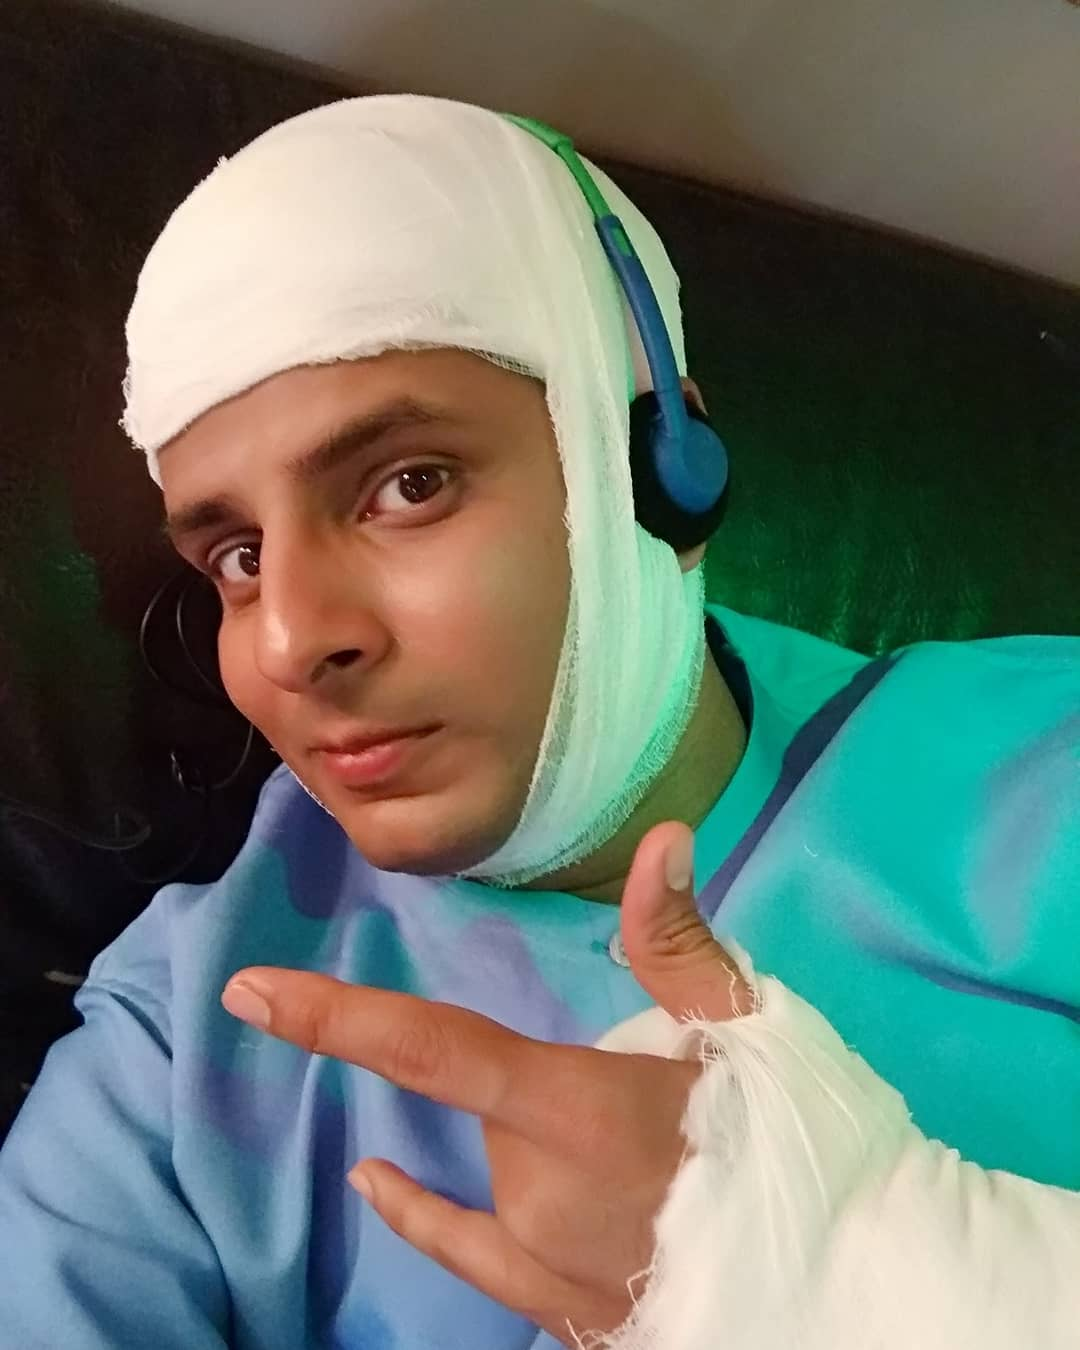 🤘Shoot, Selfie, Surgery, Swag😏 . #LadiesSpecial #ShootDiaries #OjasRawal #actor #surgery #scene #swag #selfie #sonytv #hindi #serial #selfietime #medlife #doctor #dr #amardesai #actorslife #mumbai #india #ojas #sony #shooting #yo #swagger #bandage #plaster #patient #beatup #behindthescenes #actorlife